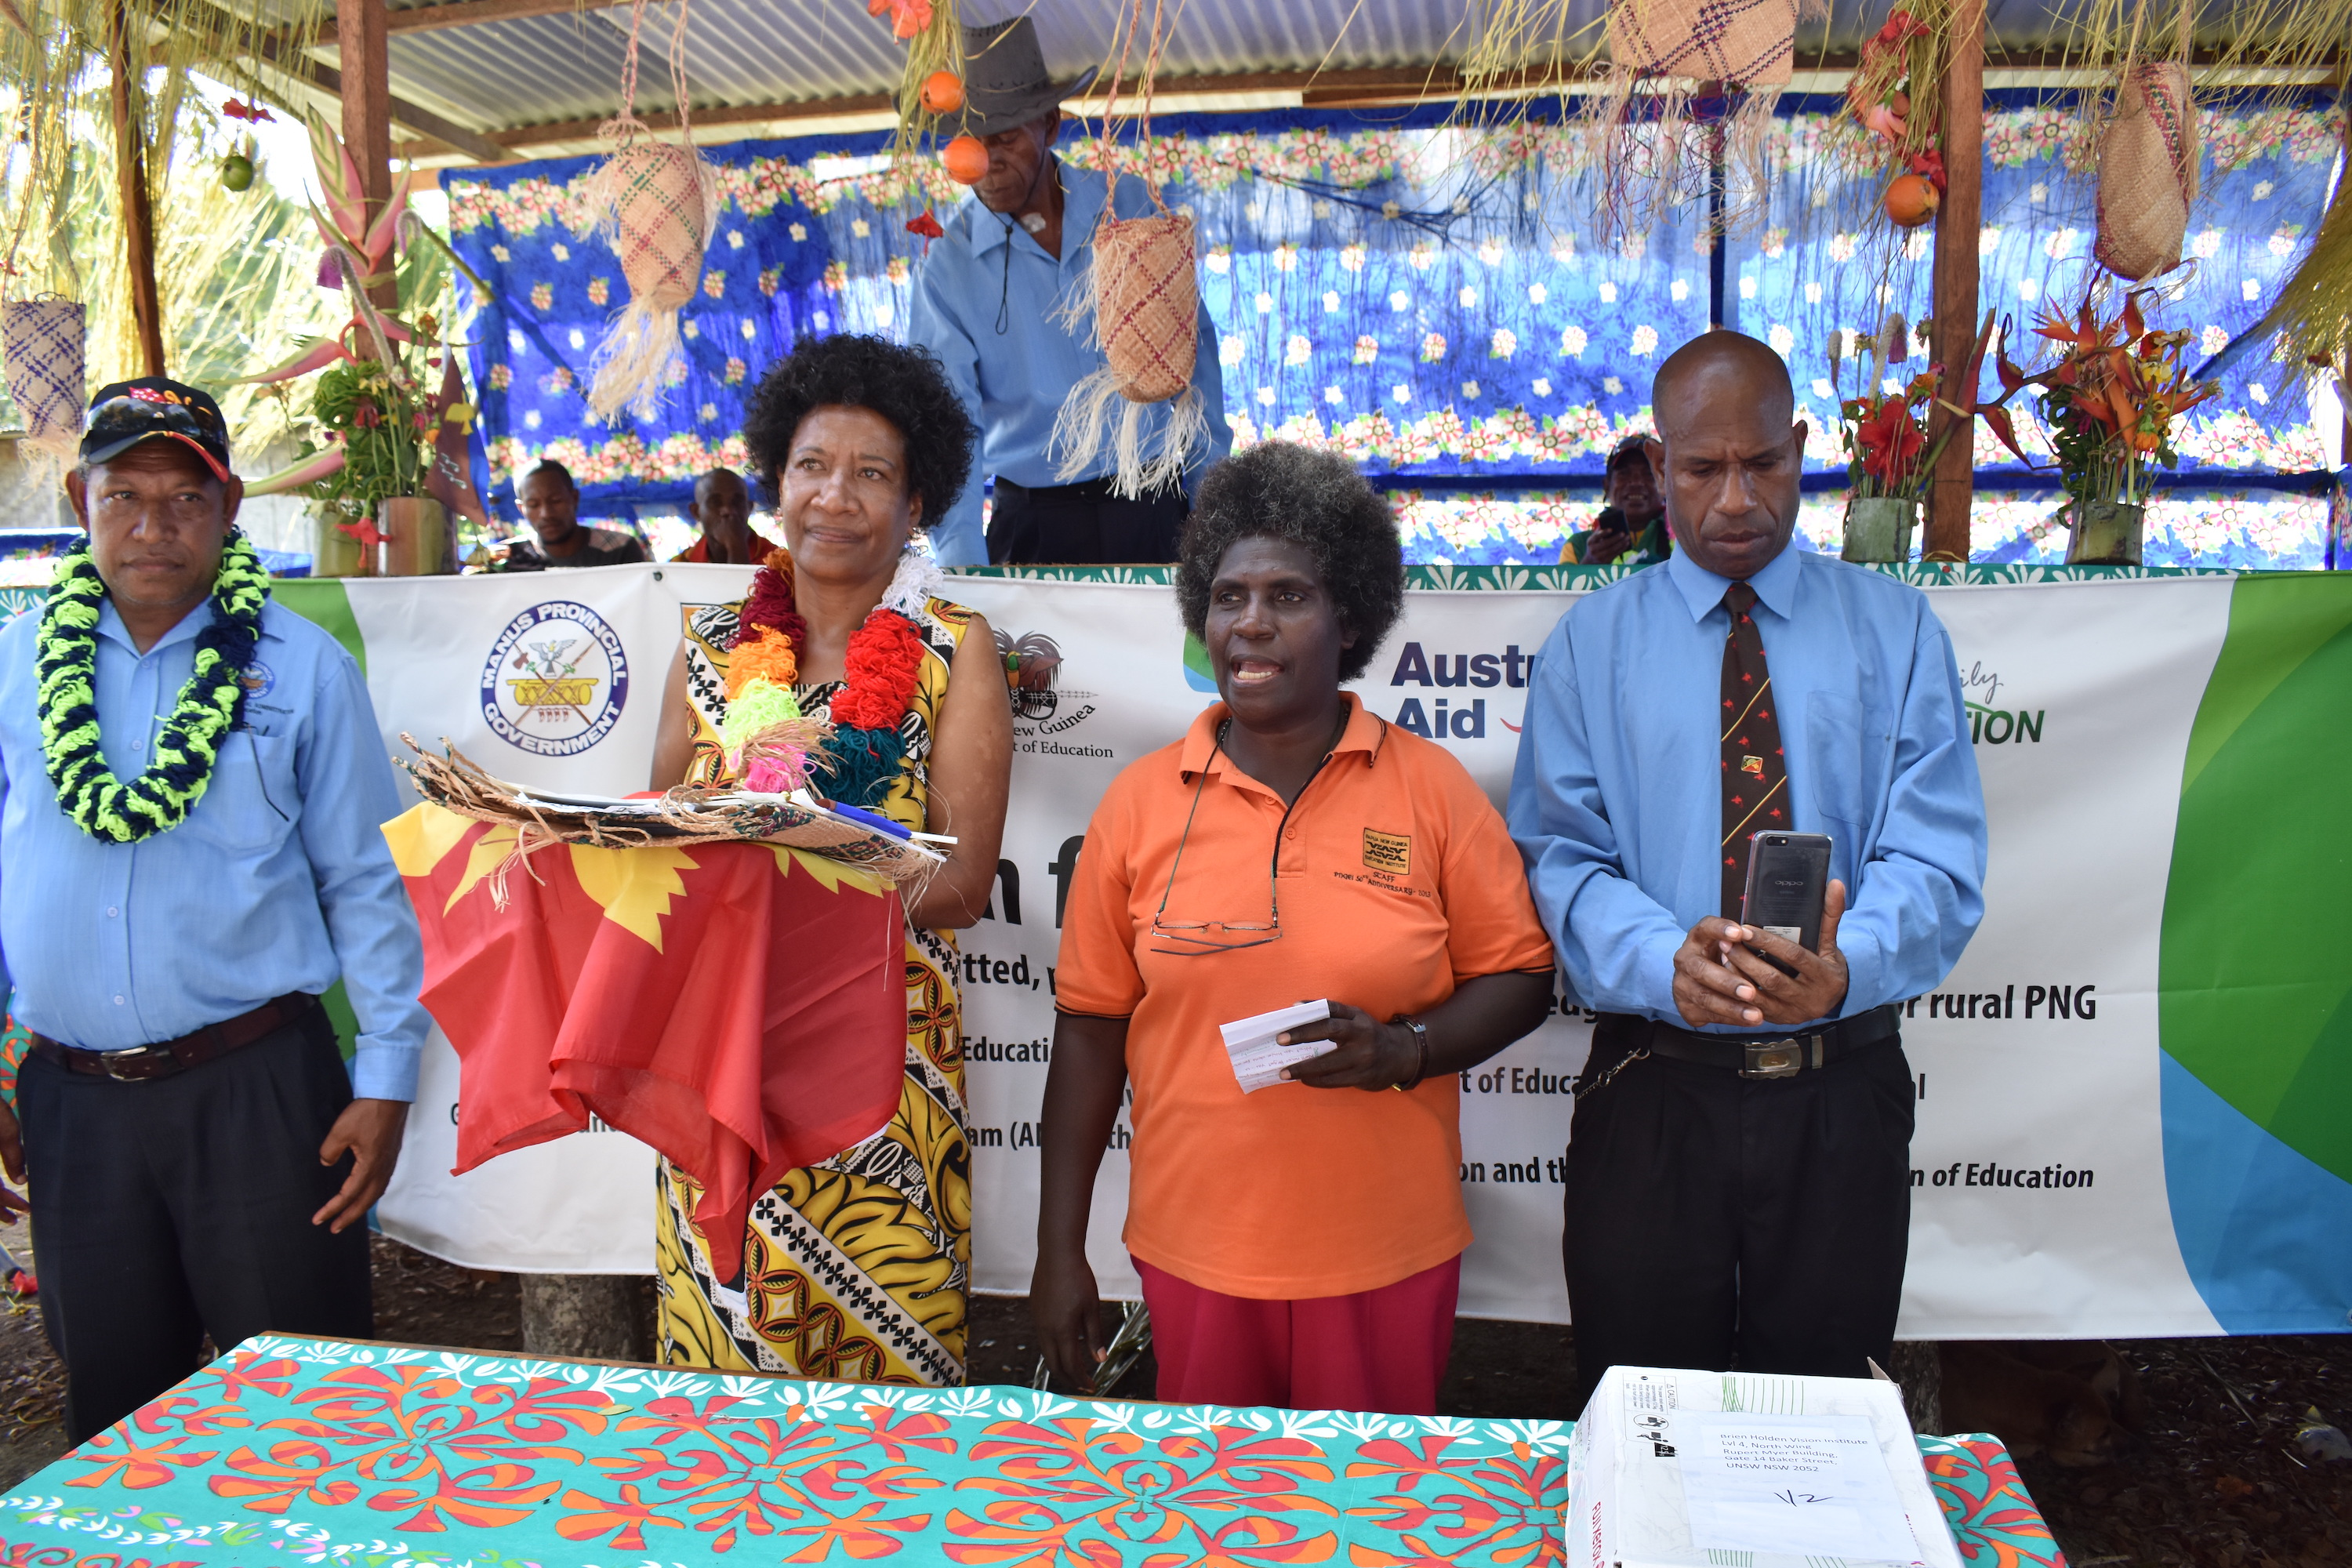 Representatives from PNG Education Institute: Caroline YariYari, Lucy Nakin, Samuel Paulson